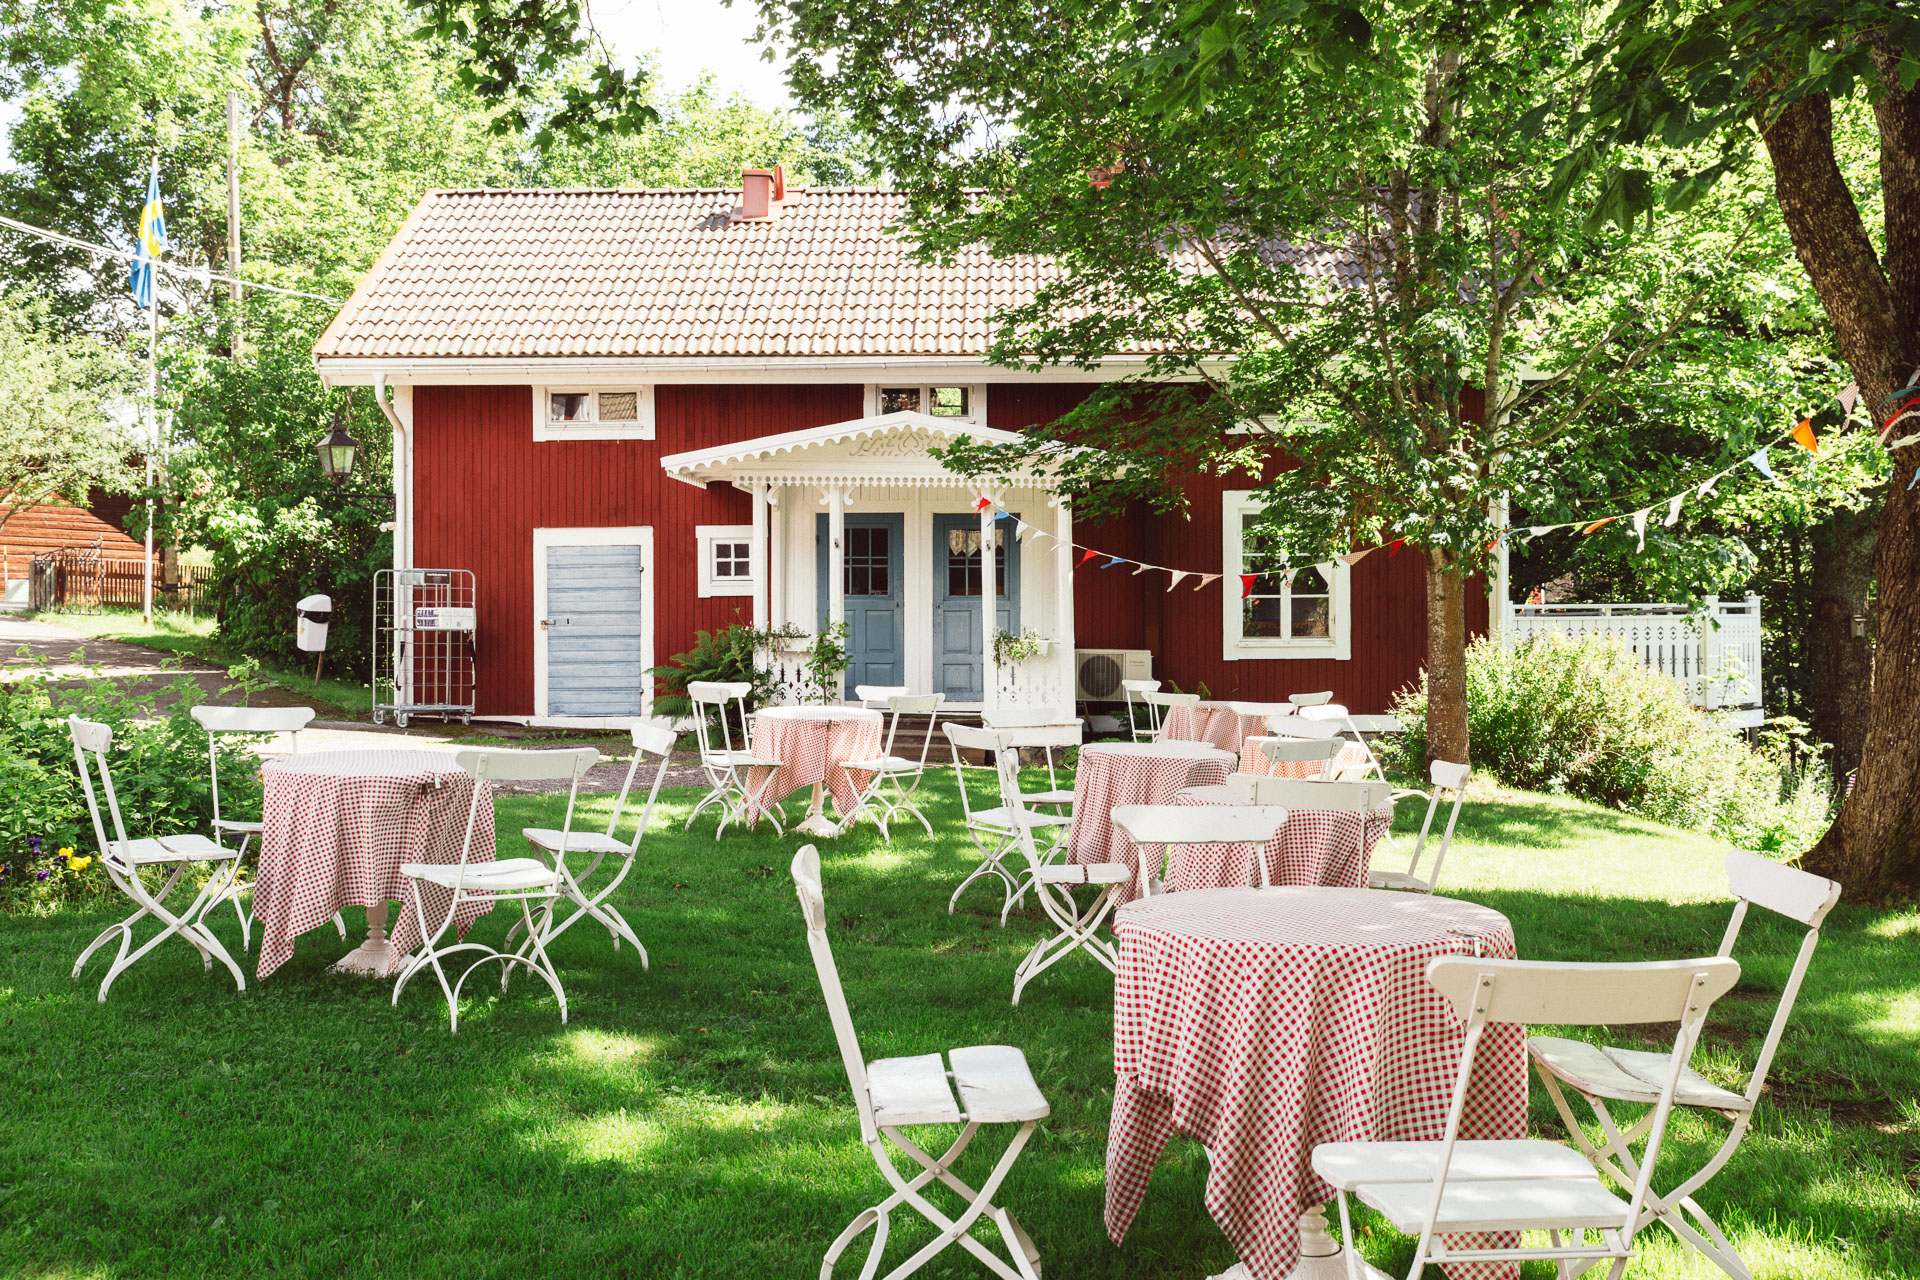 The color of this house (and many others in Sweden!) is called falu red.